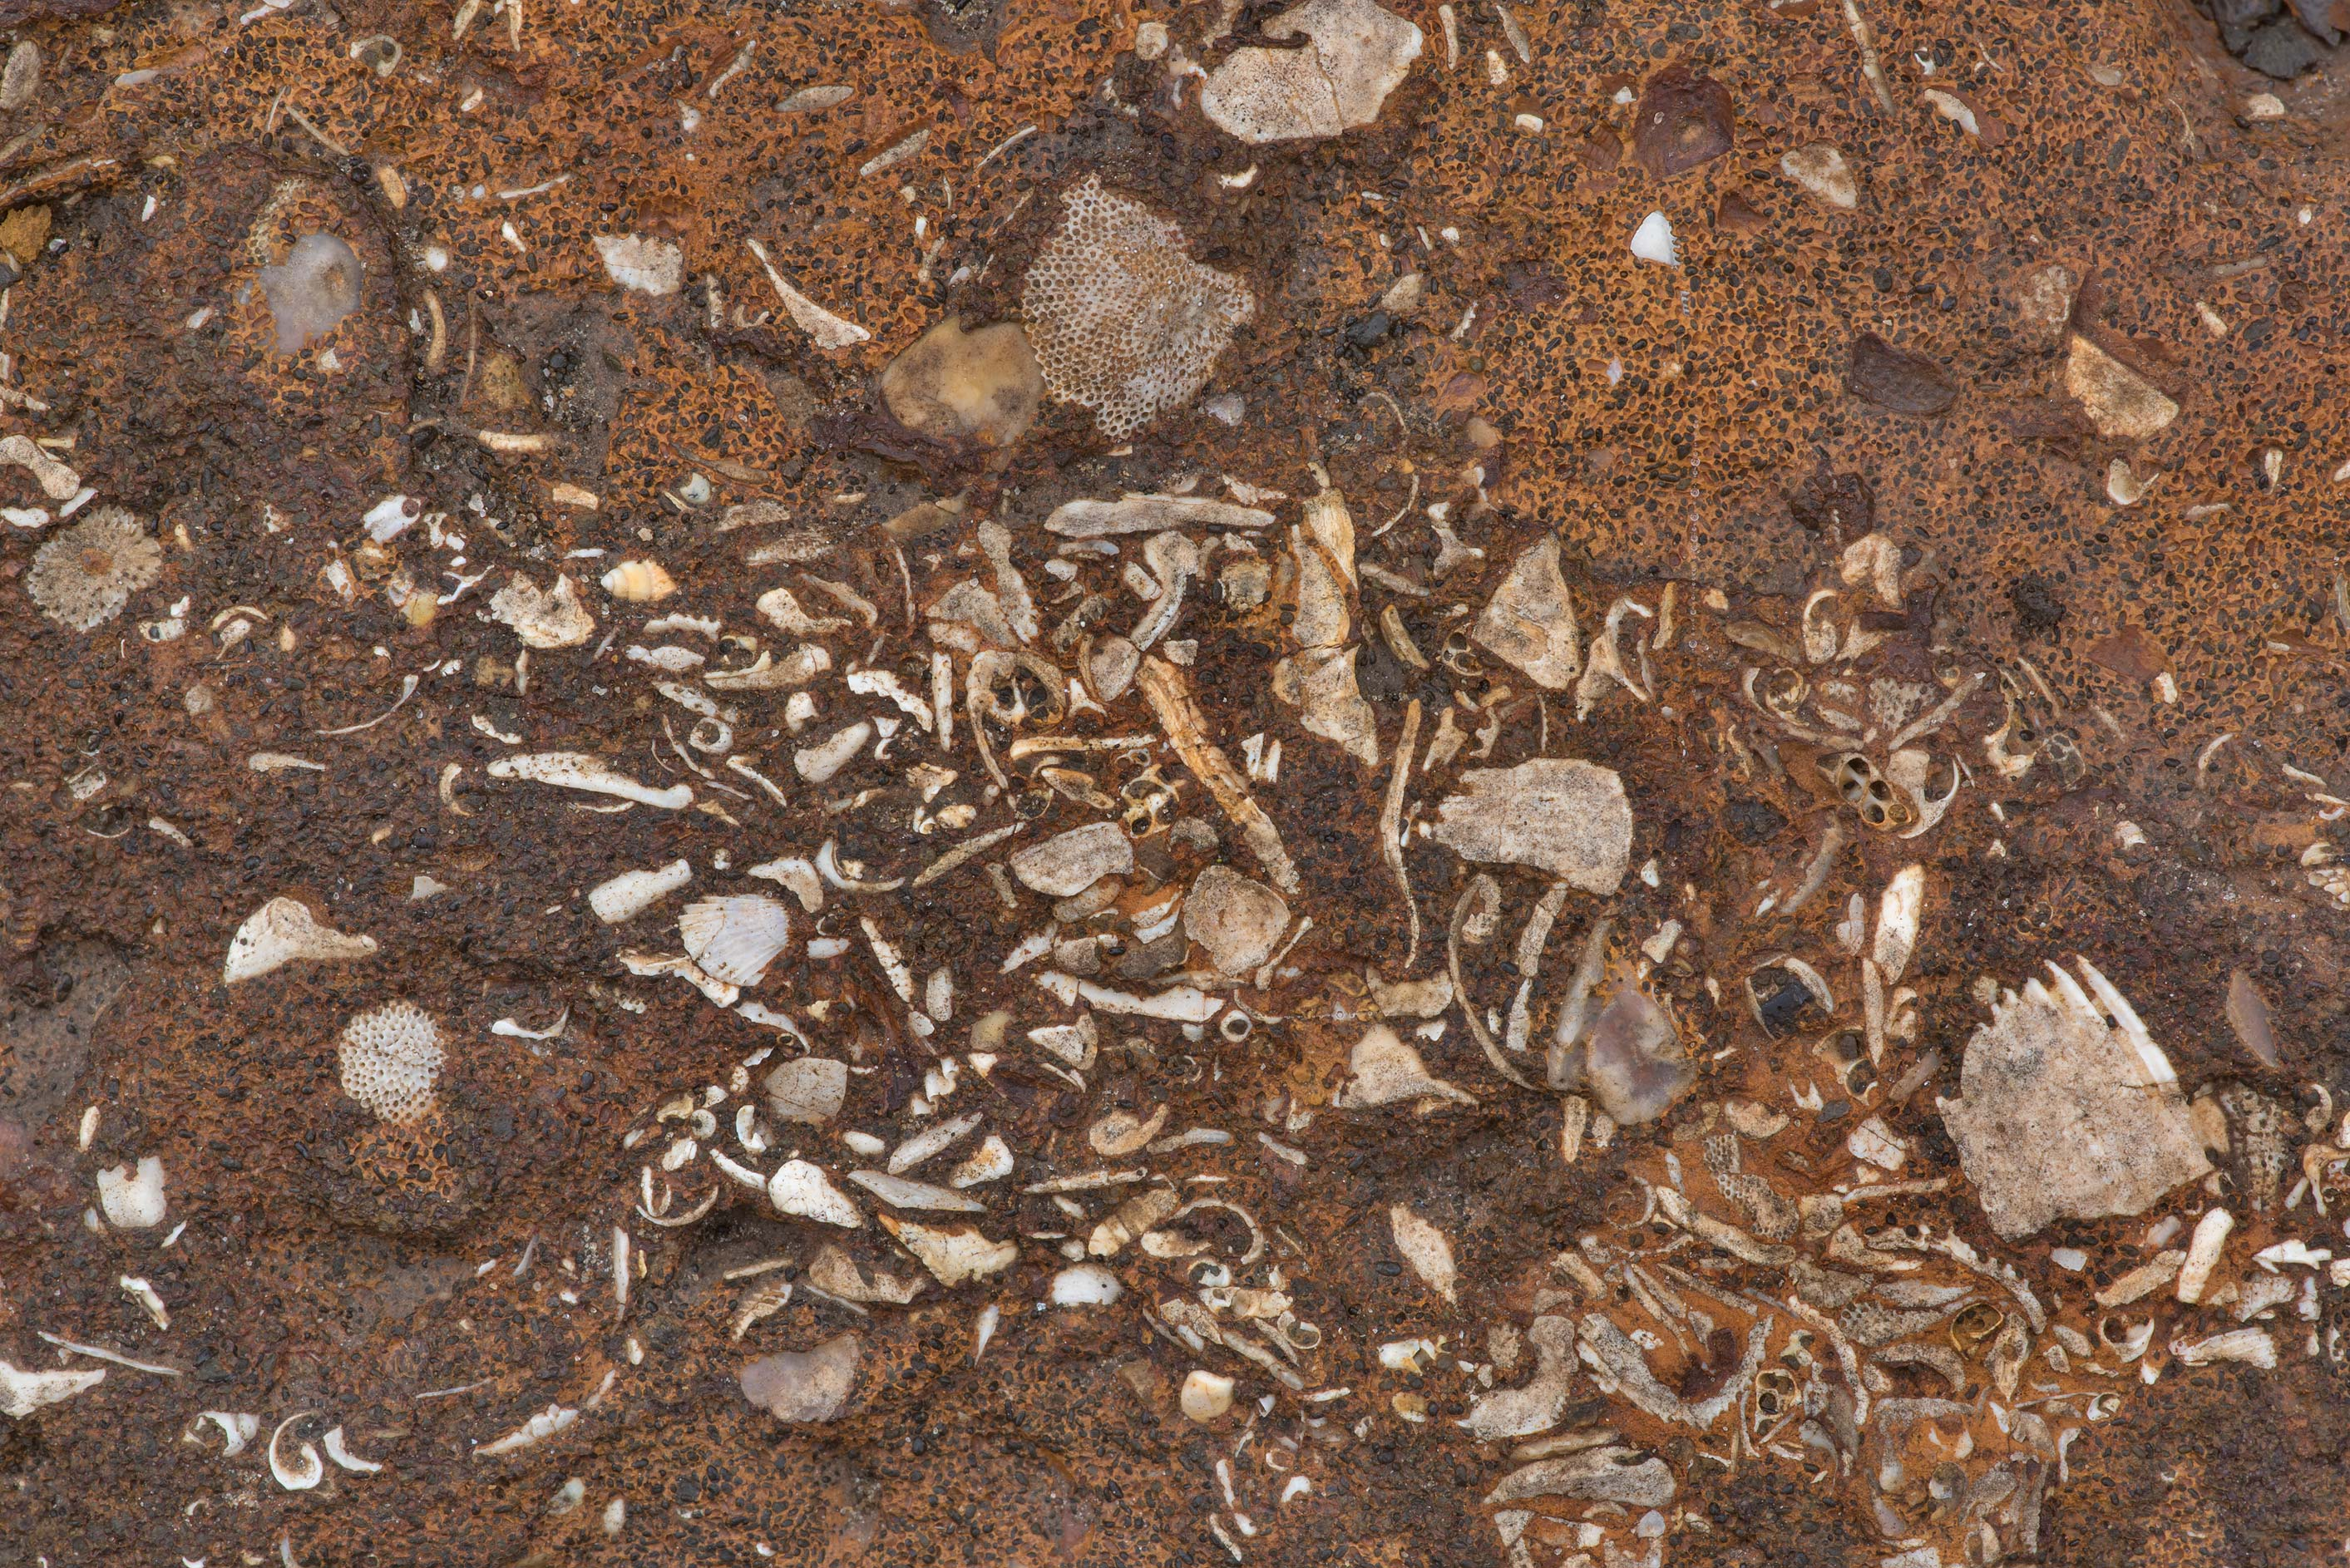 Accumulation of fossilized shells in sandstone...on Highway 21 west from Bryan. Texas